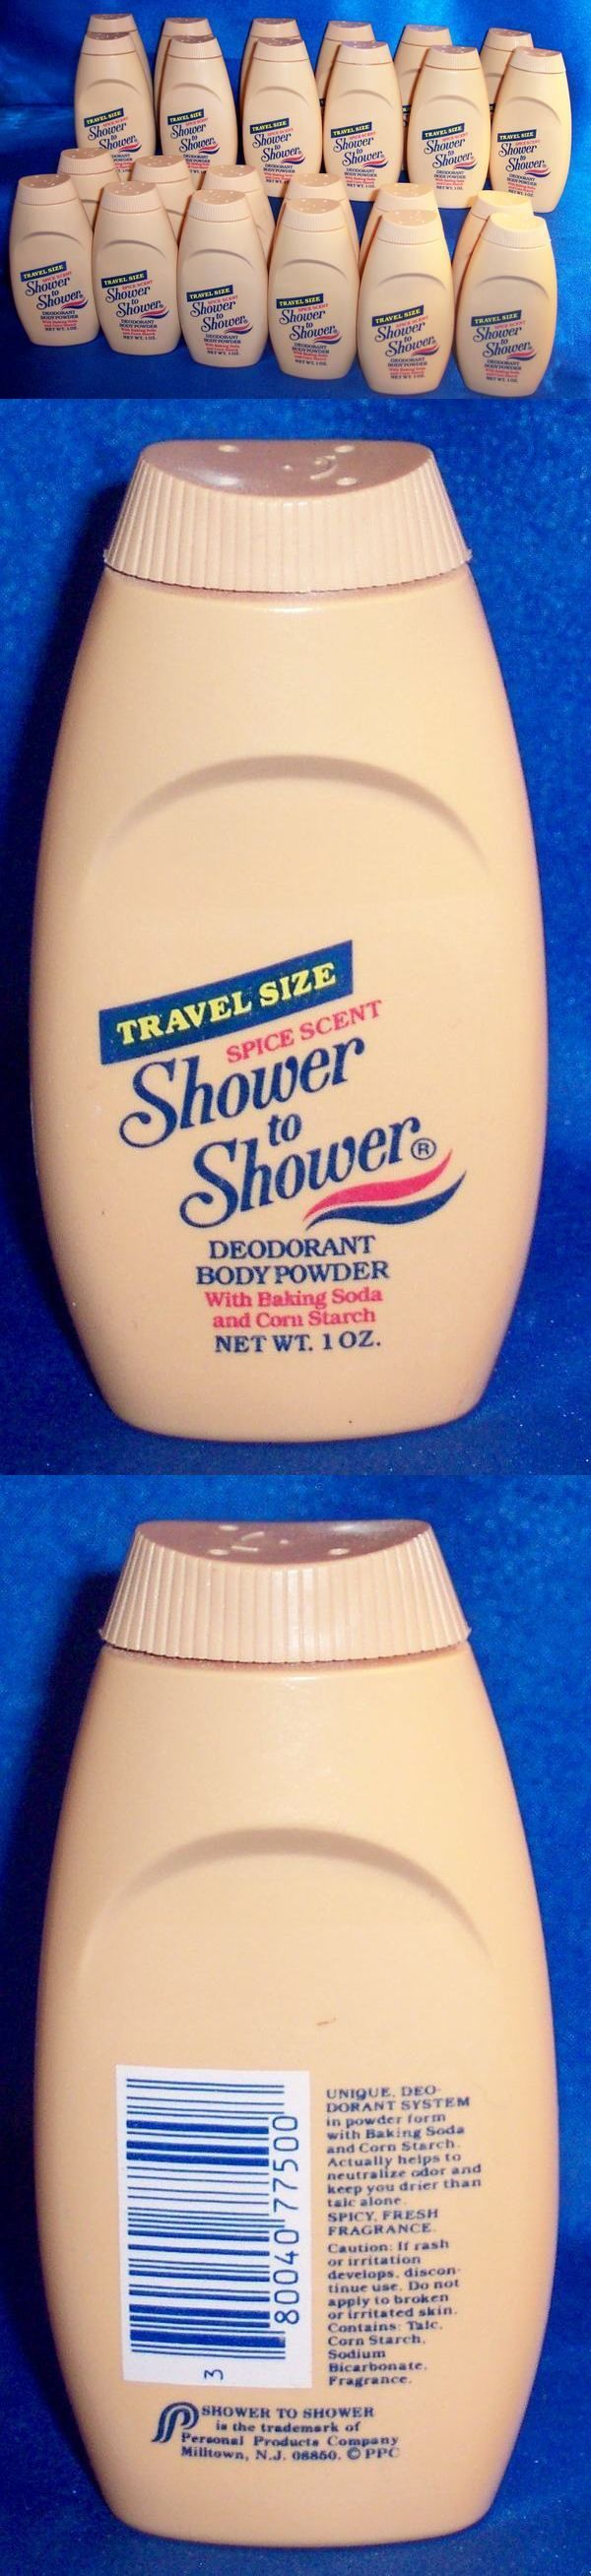 Body Powders: Rare New Vintage Shower To Shower Spice Scent Deodorant Body Powder 1Oz Lot 25 BUY IT NOW ONLY: $54.95